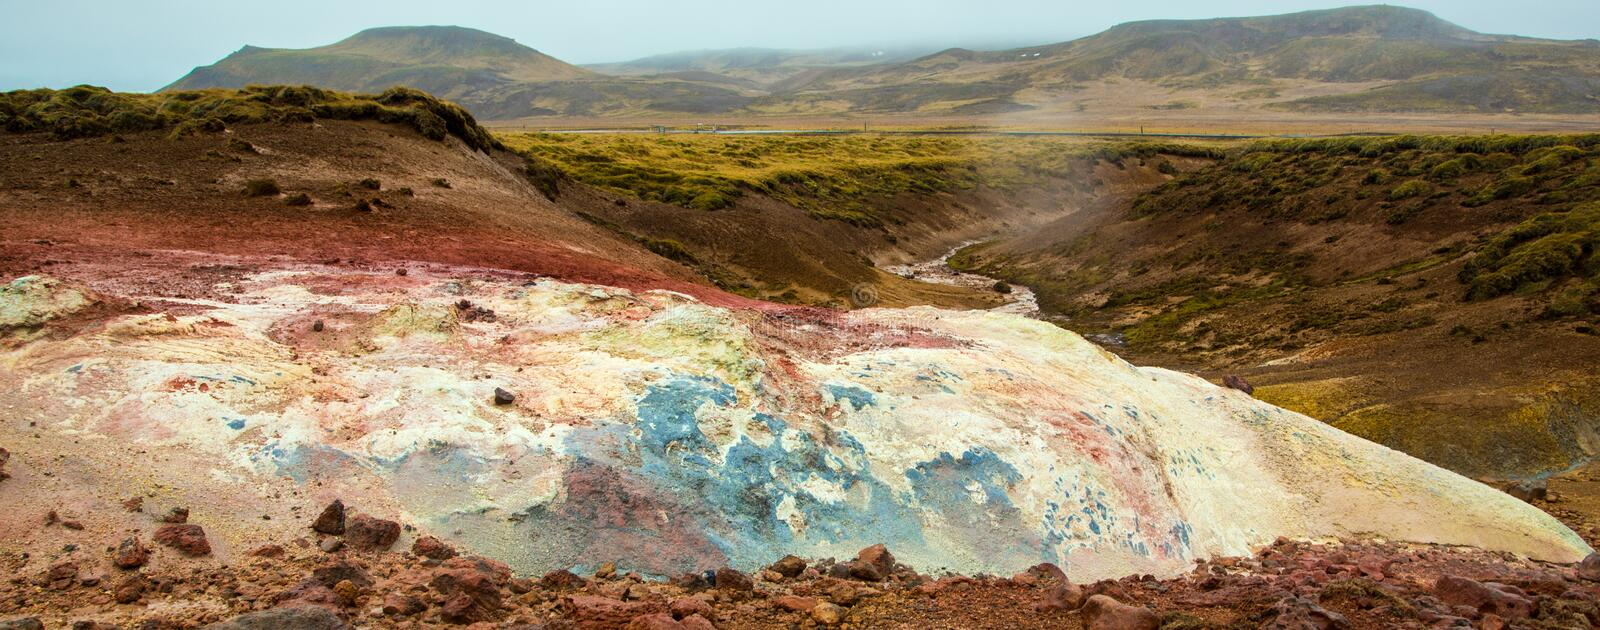 Geothermal area with colorful mineral rocks. Geothermal area in Iceland near Reyjavik with colorful mineral rocks royalty free stock photography